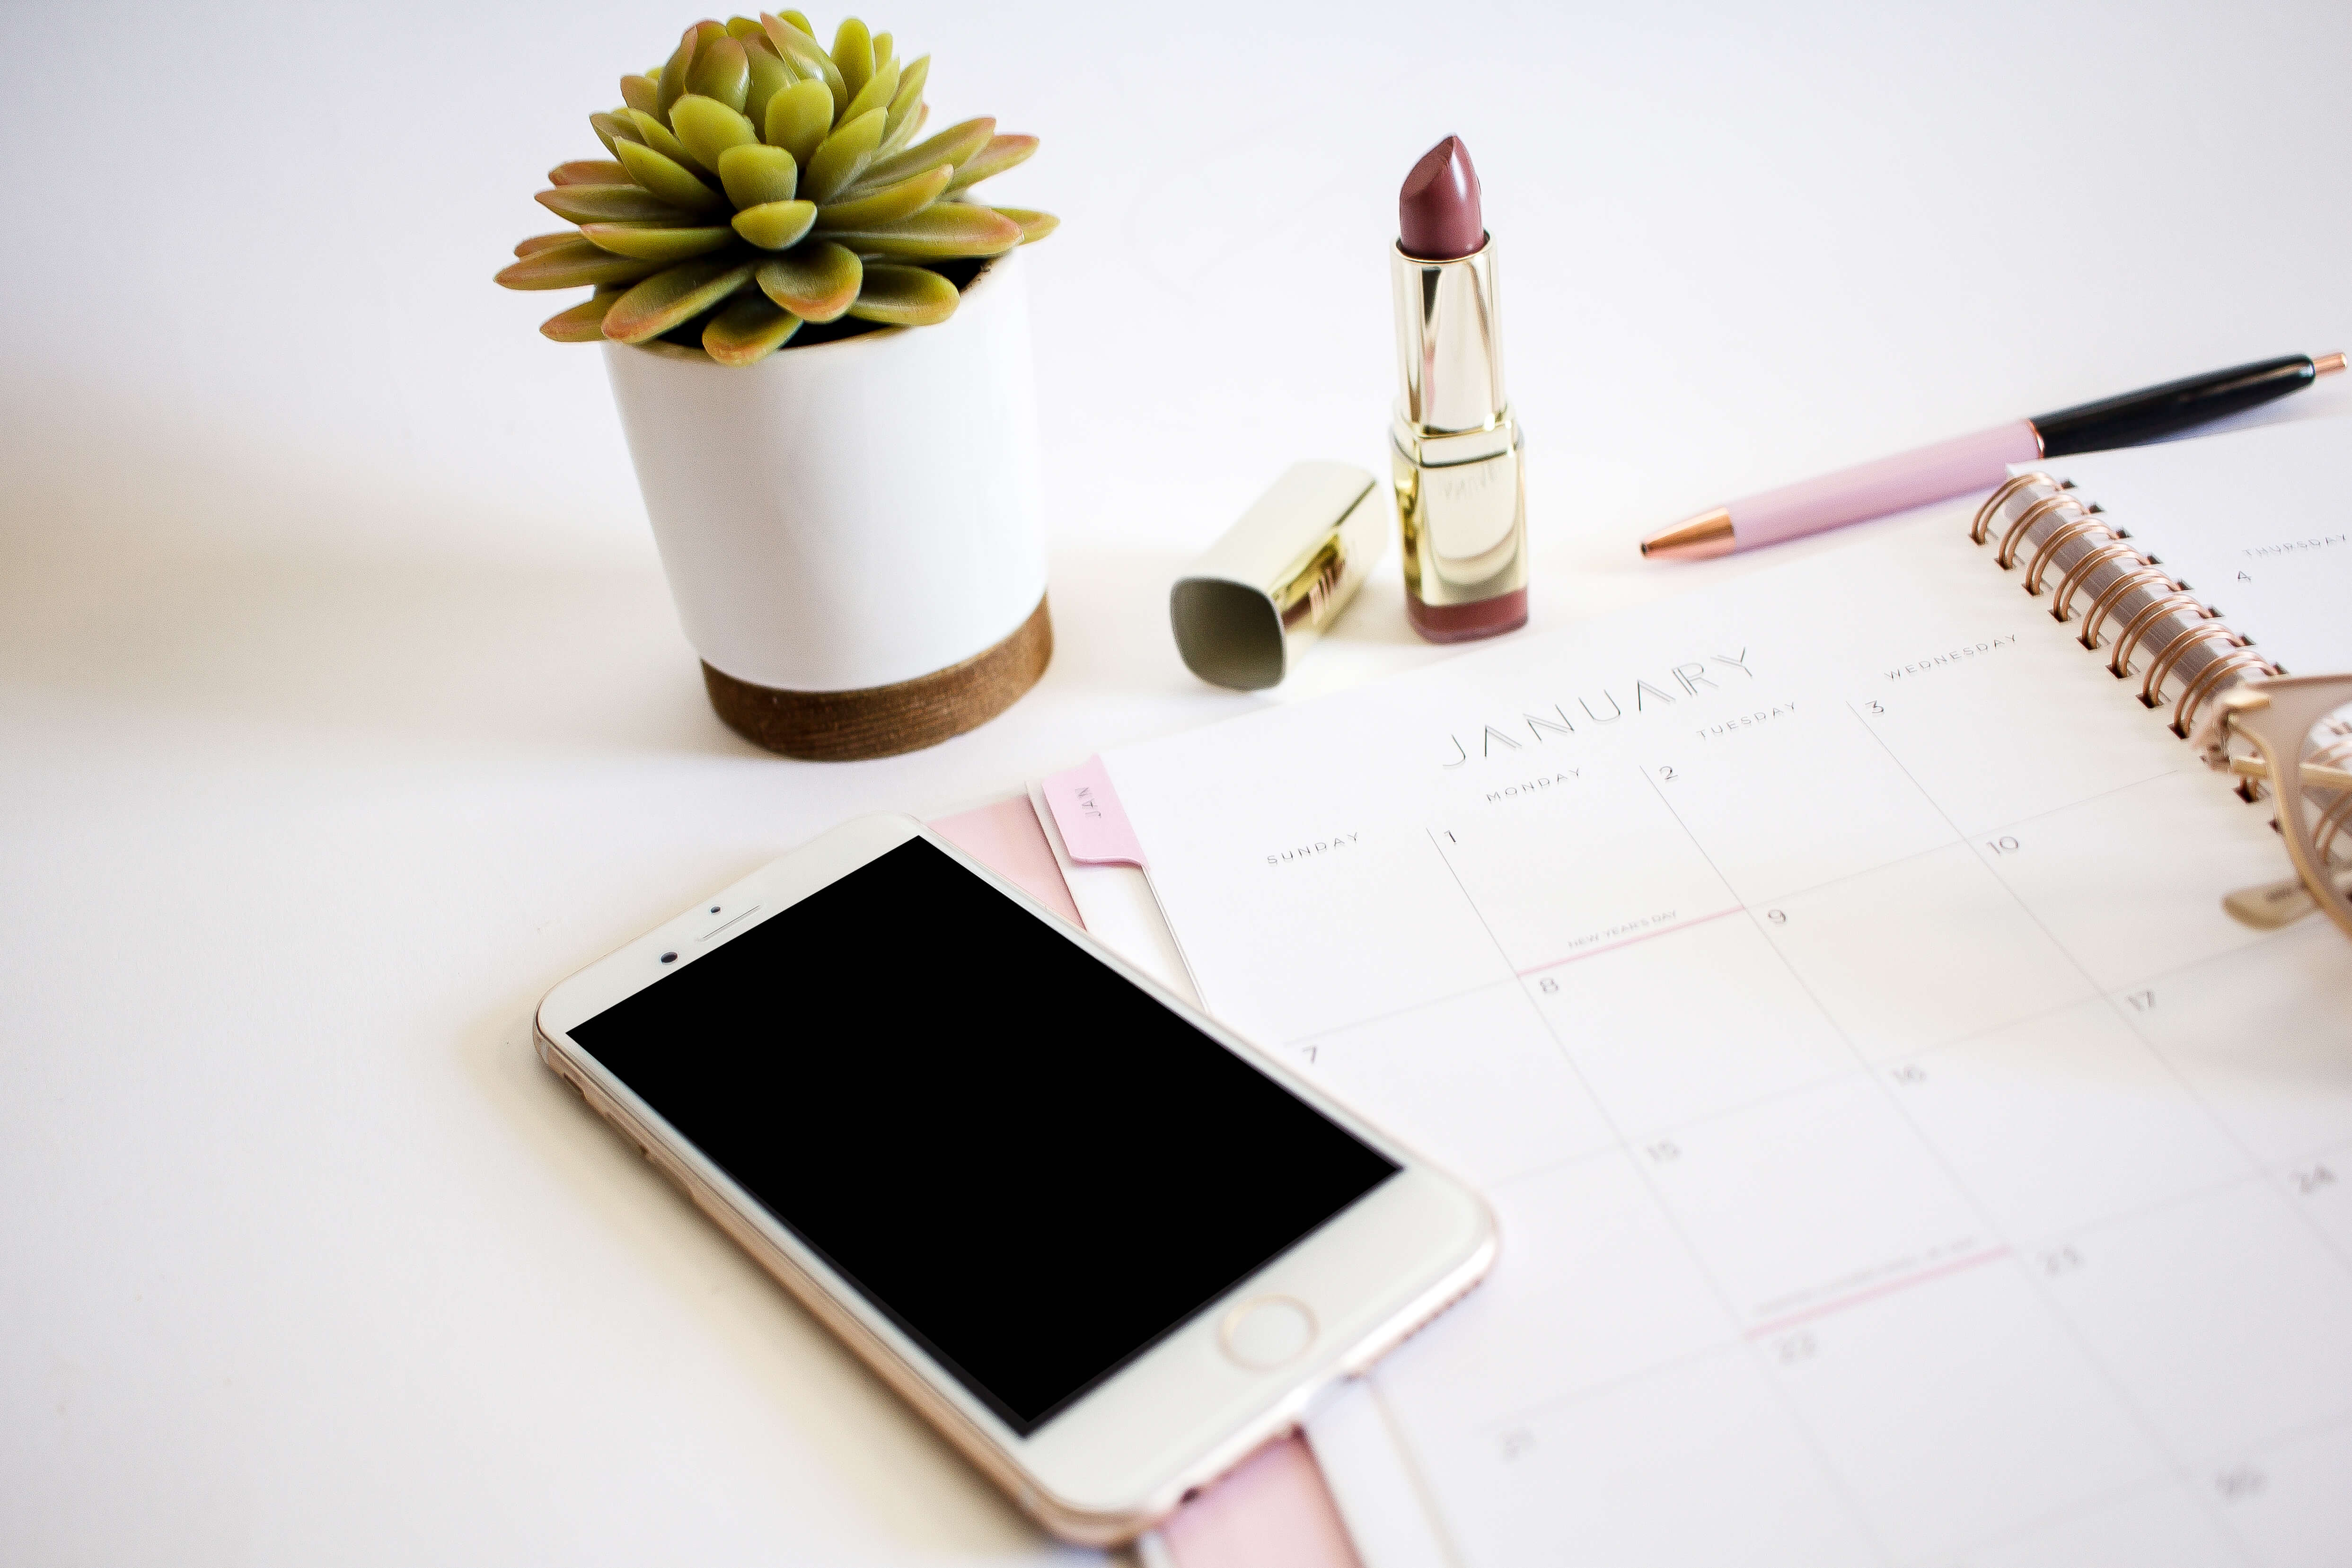 flat lay photo with cell phone, lipstick, calendar and plant